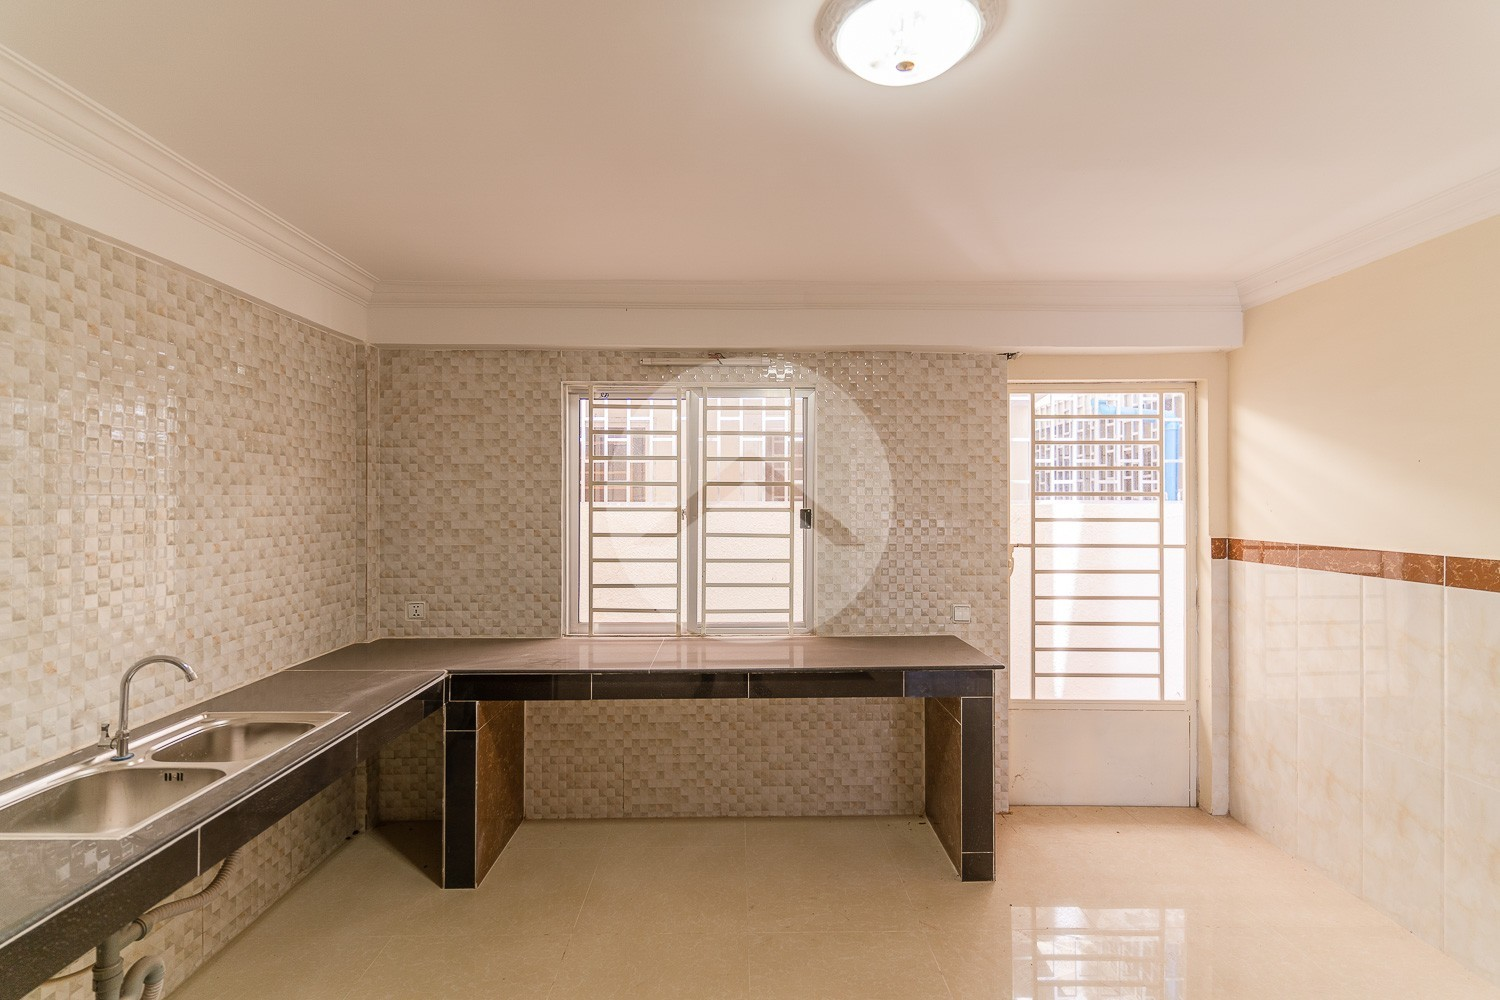 2 Bedroom Shophouse For Sale - Svay Thom, Siem Reap